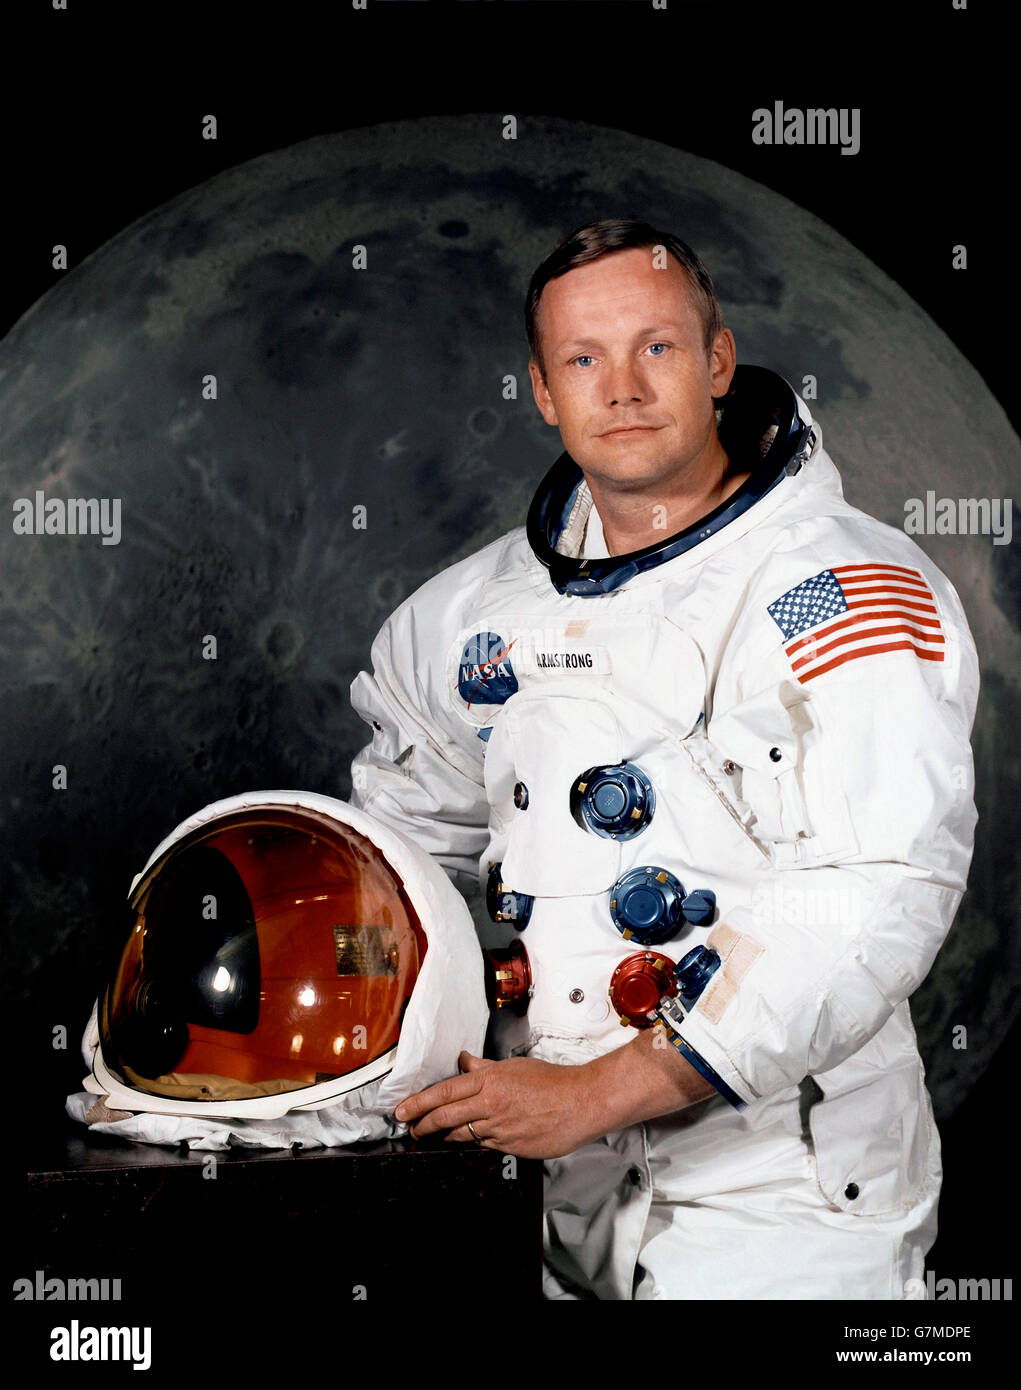 Neil Armstrong, Astronaut. Official NASA portrait of Neil A. Armstrong, commander of the Apollo 11 lunar landing Stock Photo